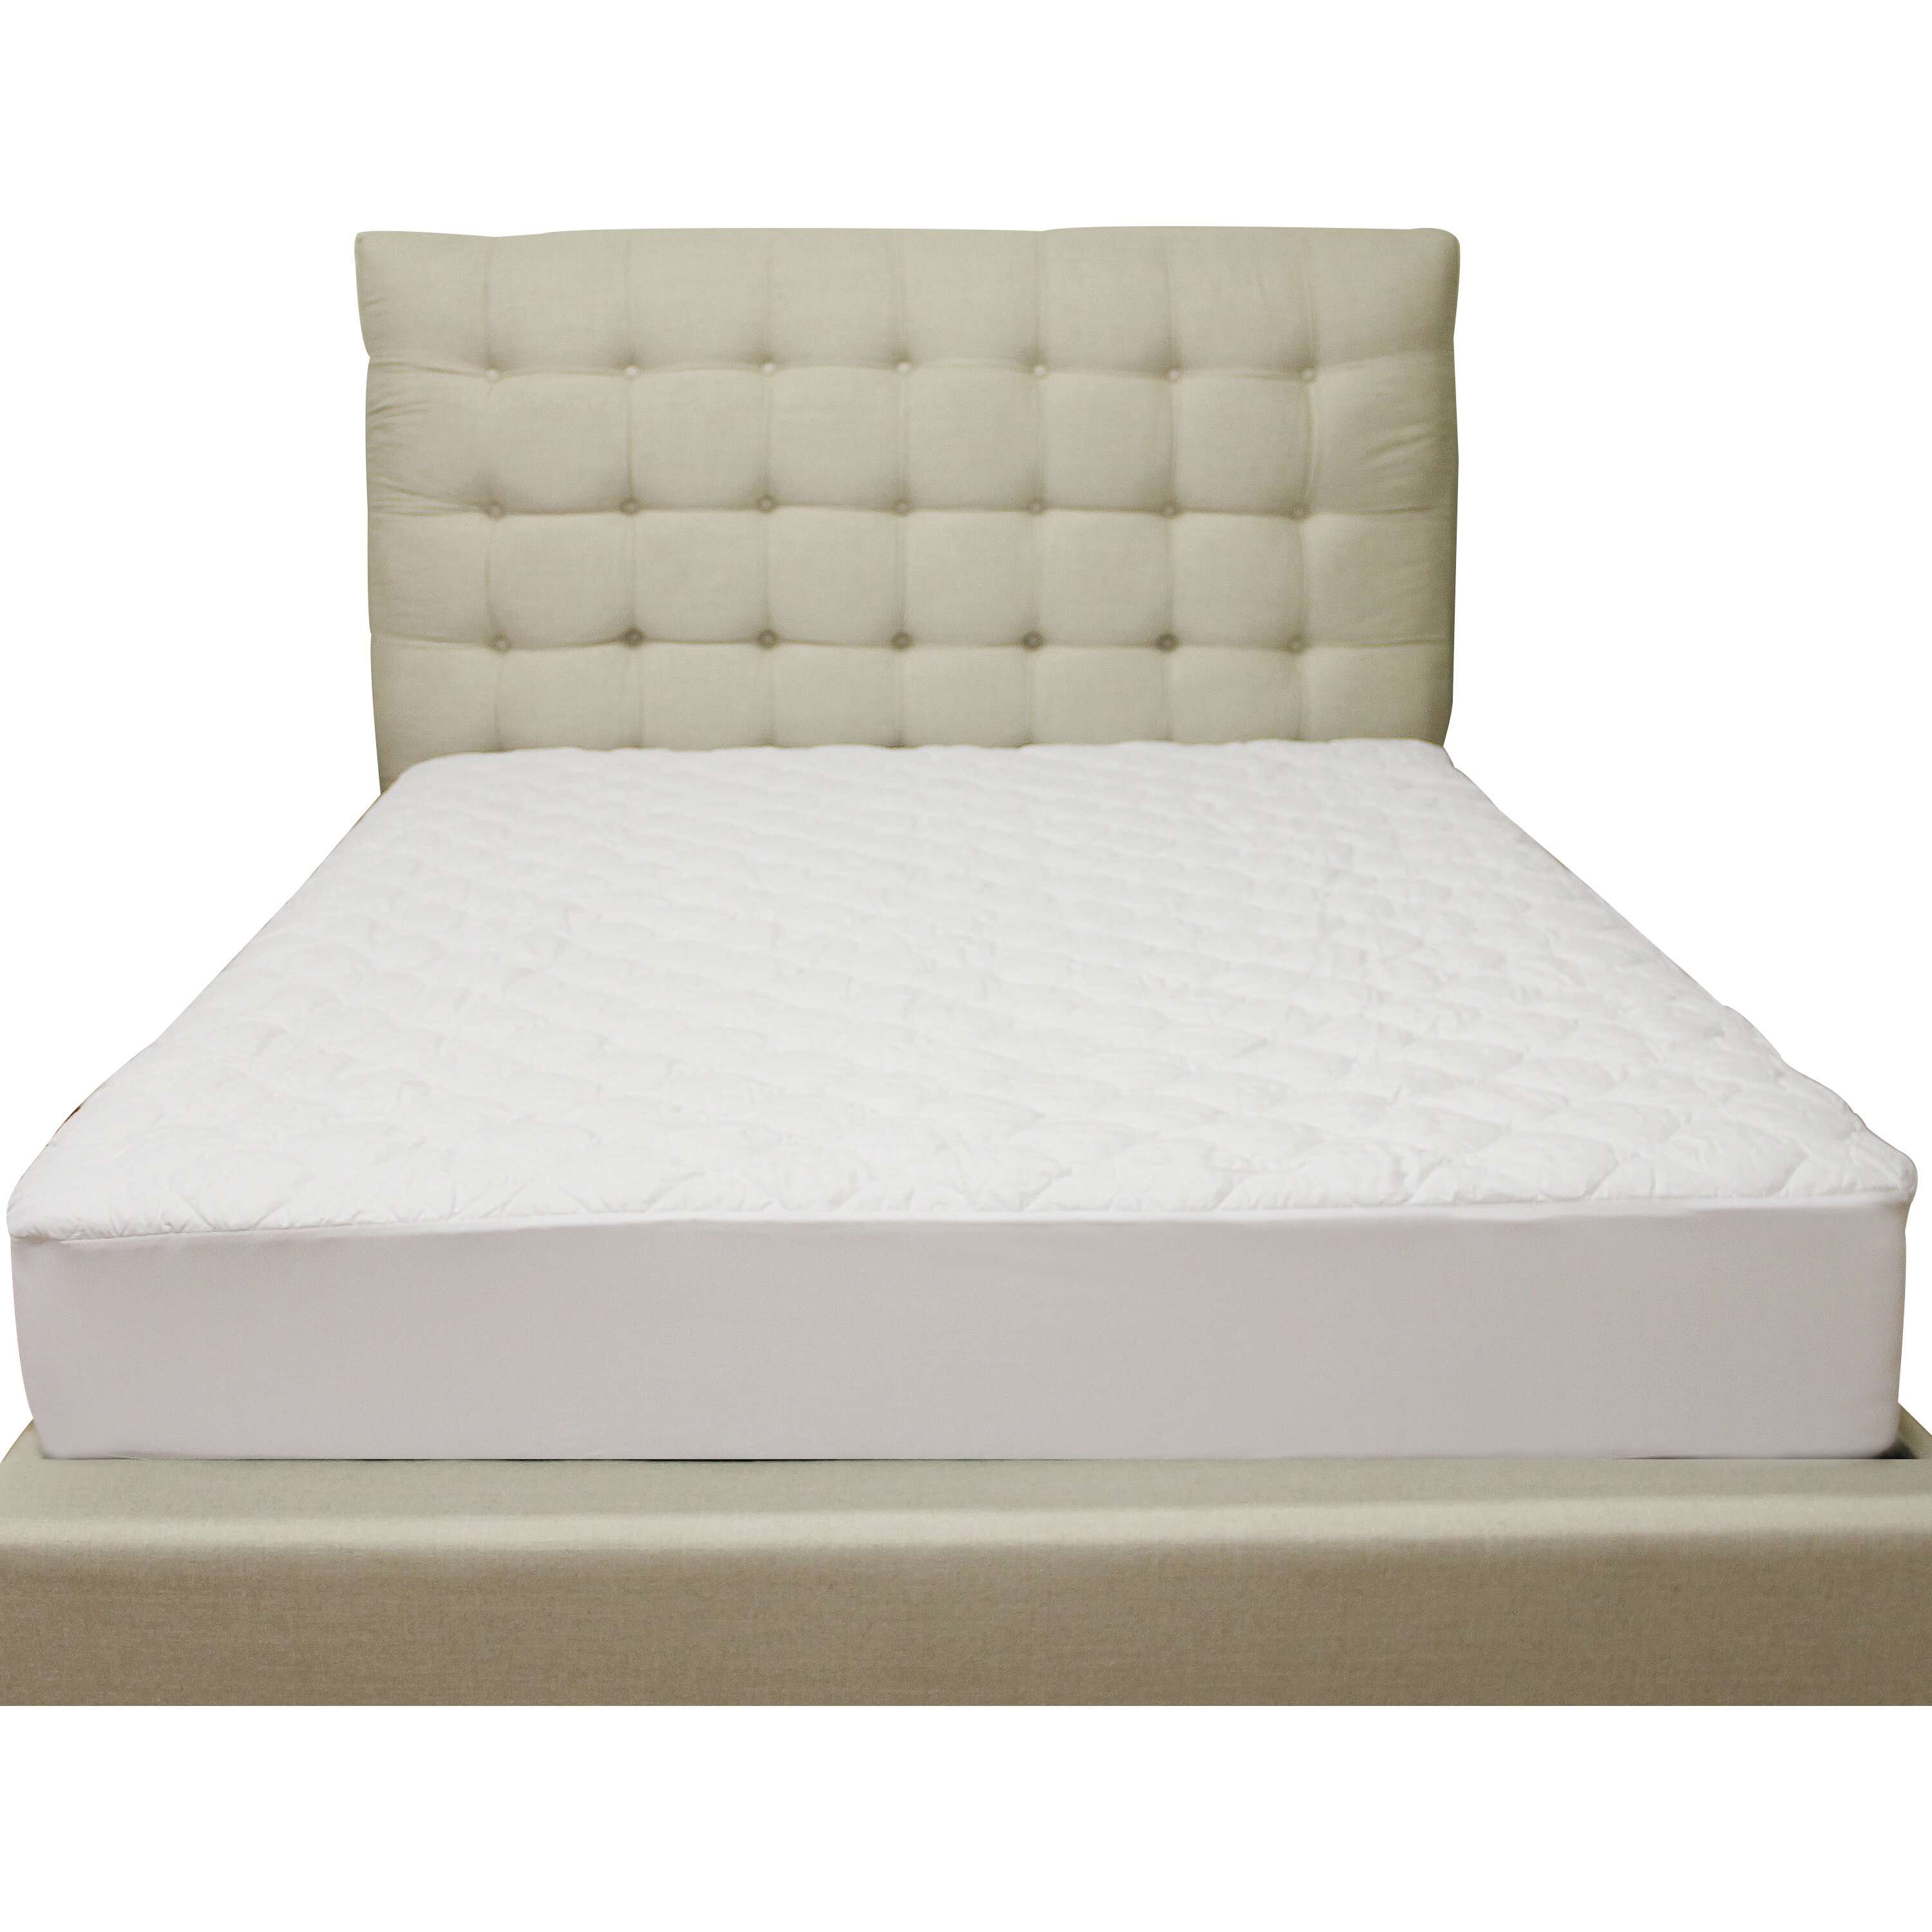 Classic Brands Deluxe Defend A Bed Quilted Hypoallergenic